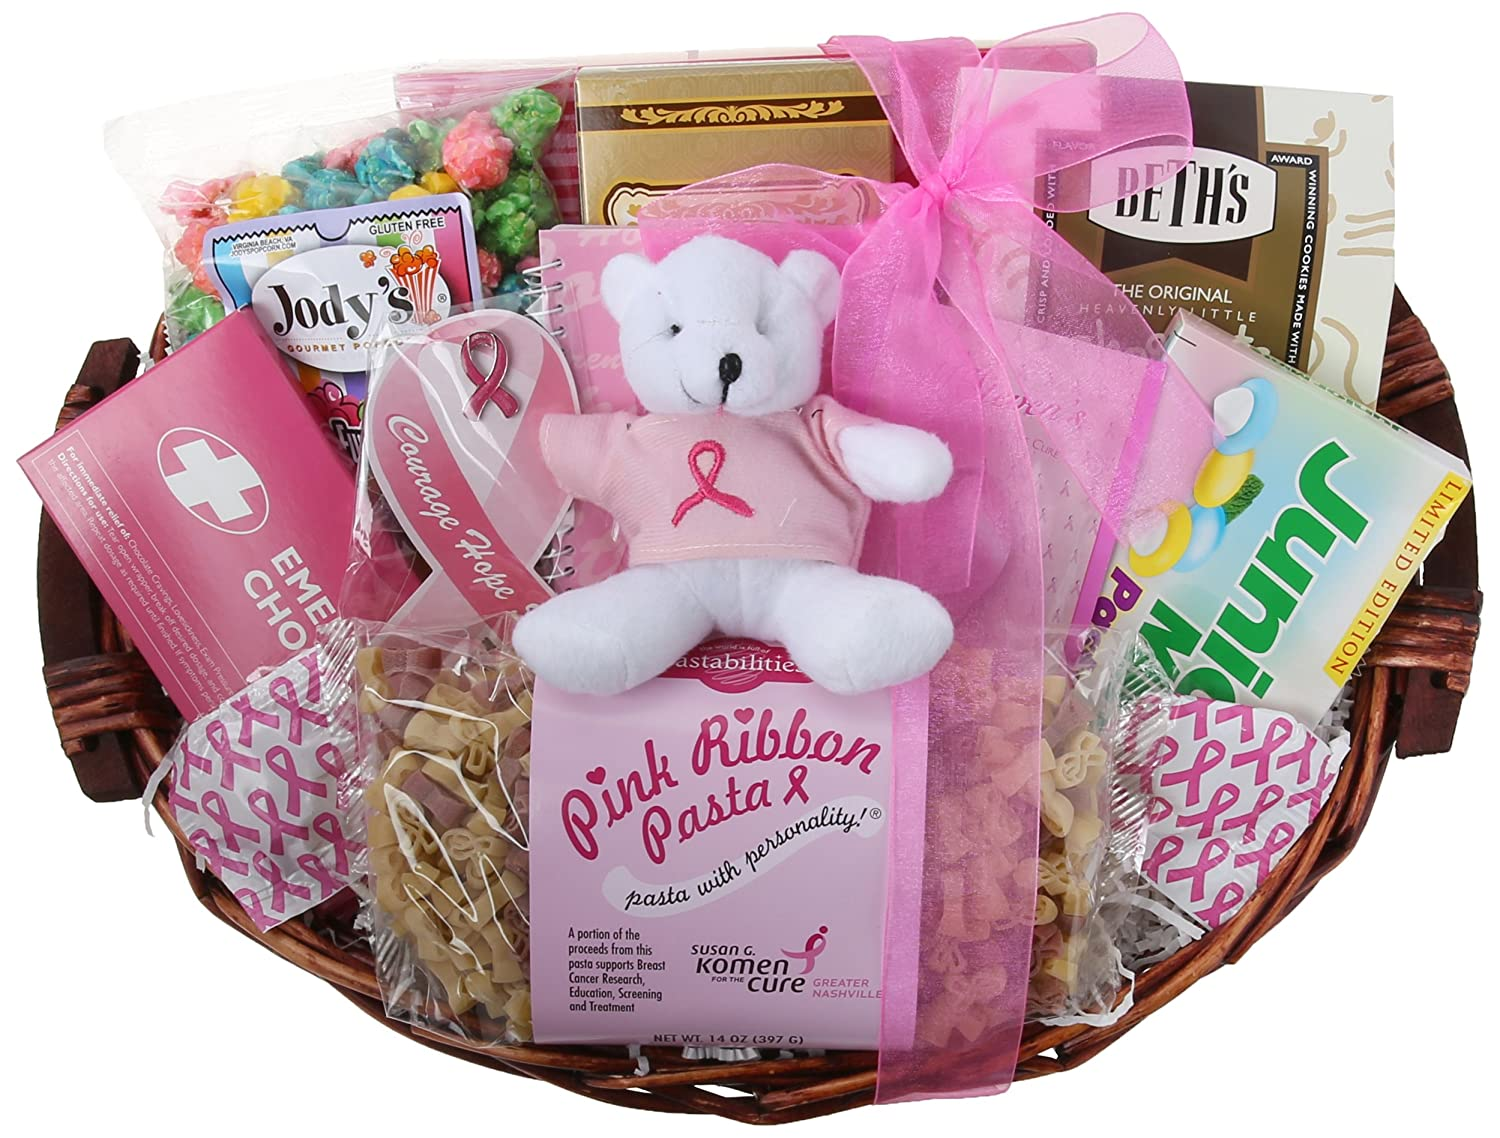 Amazon greatarrivals gift baskets courage hope and strength amazon greatarrivals gift baskets courage hope and strength breast cancer set gourmet snacks and hors doeuvres gifts grocery gourmet food negle Gallery